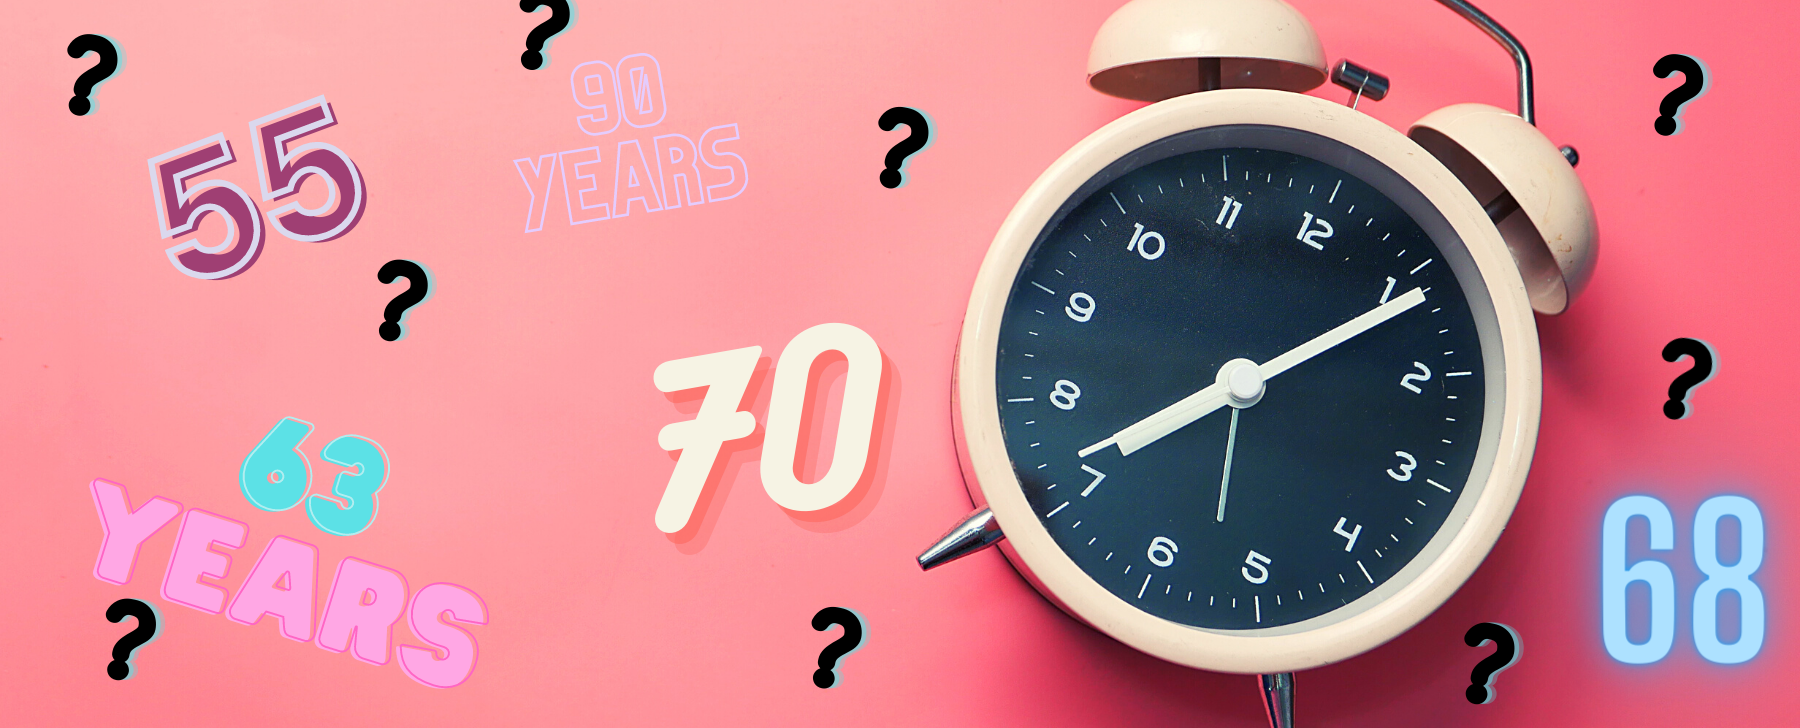 an alarm clockon a pink background with numbers and question marks around it. RETIREMENT PLANNING